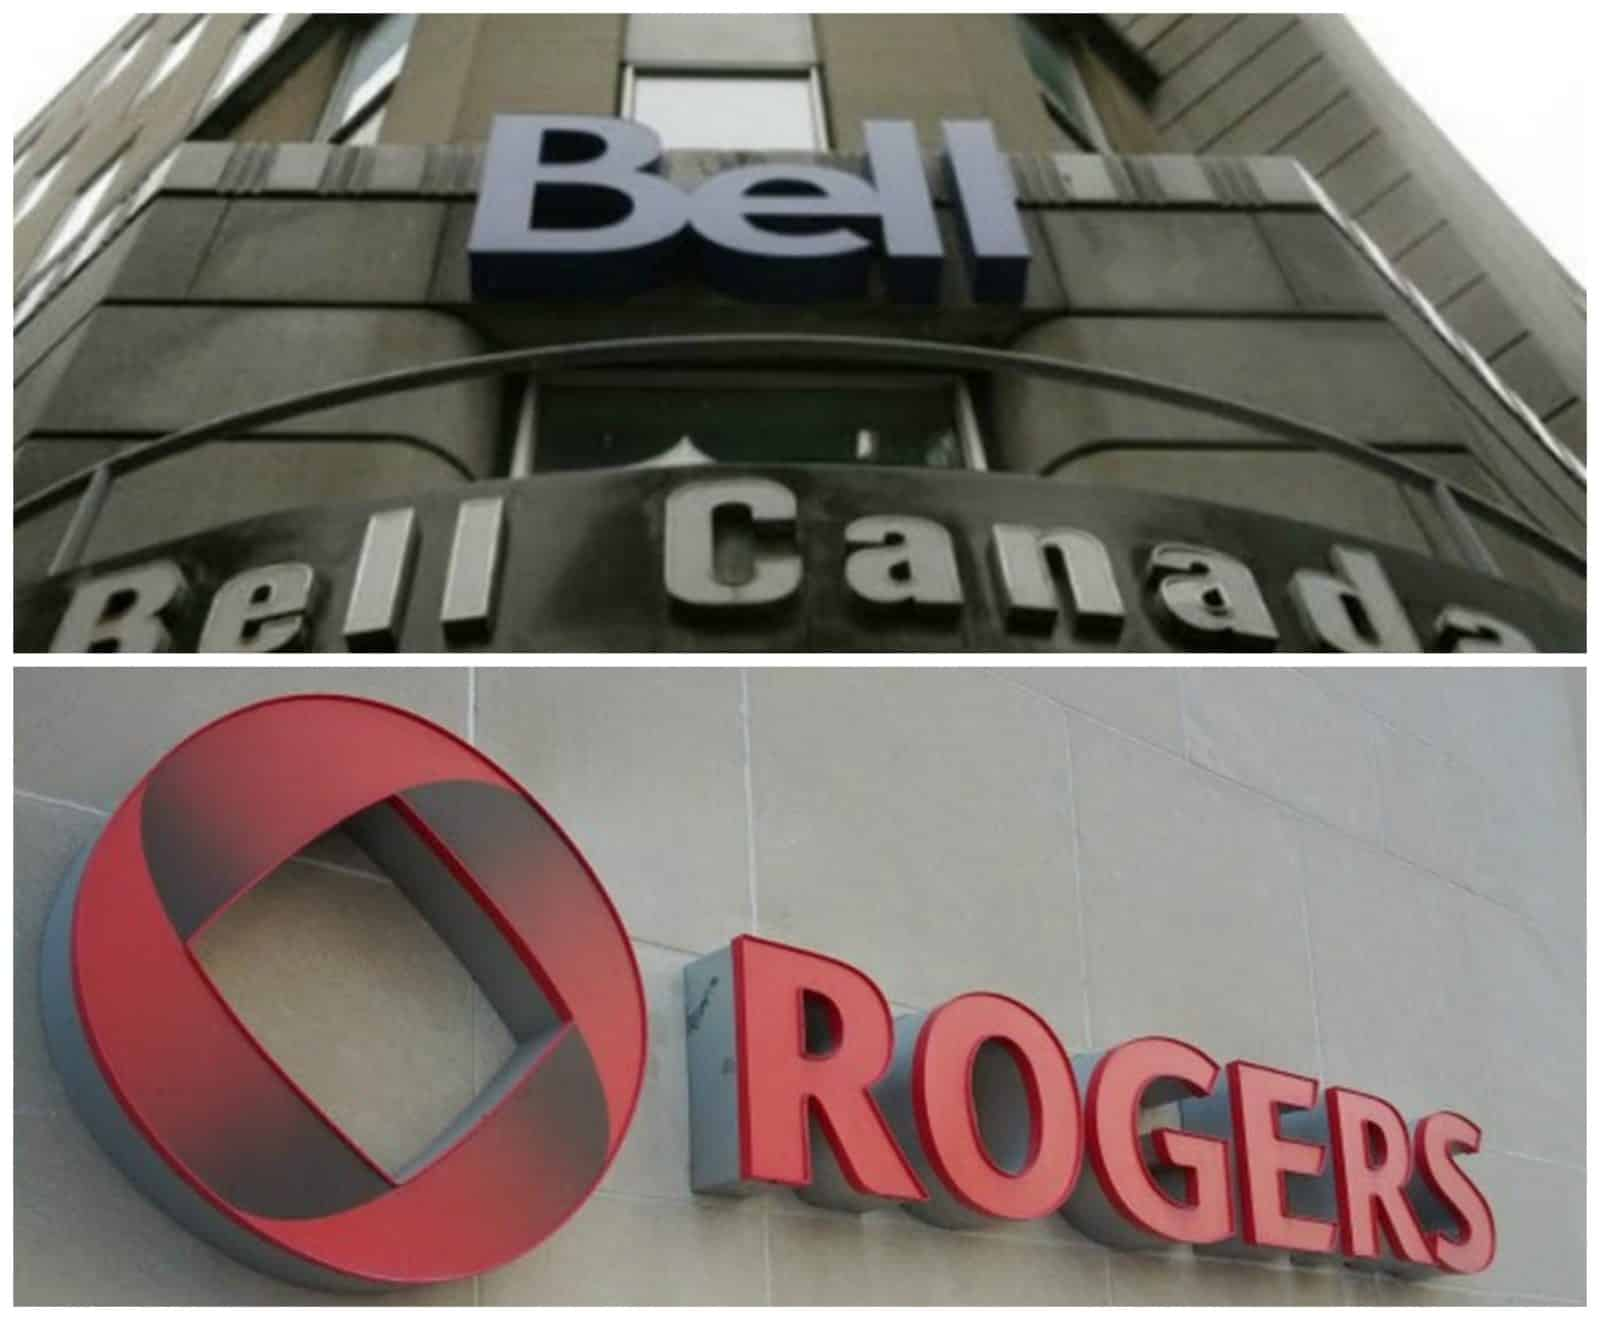 Bell and Rogers